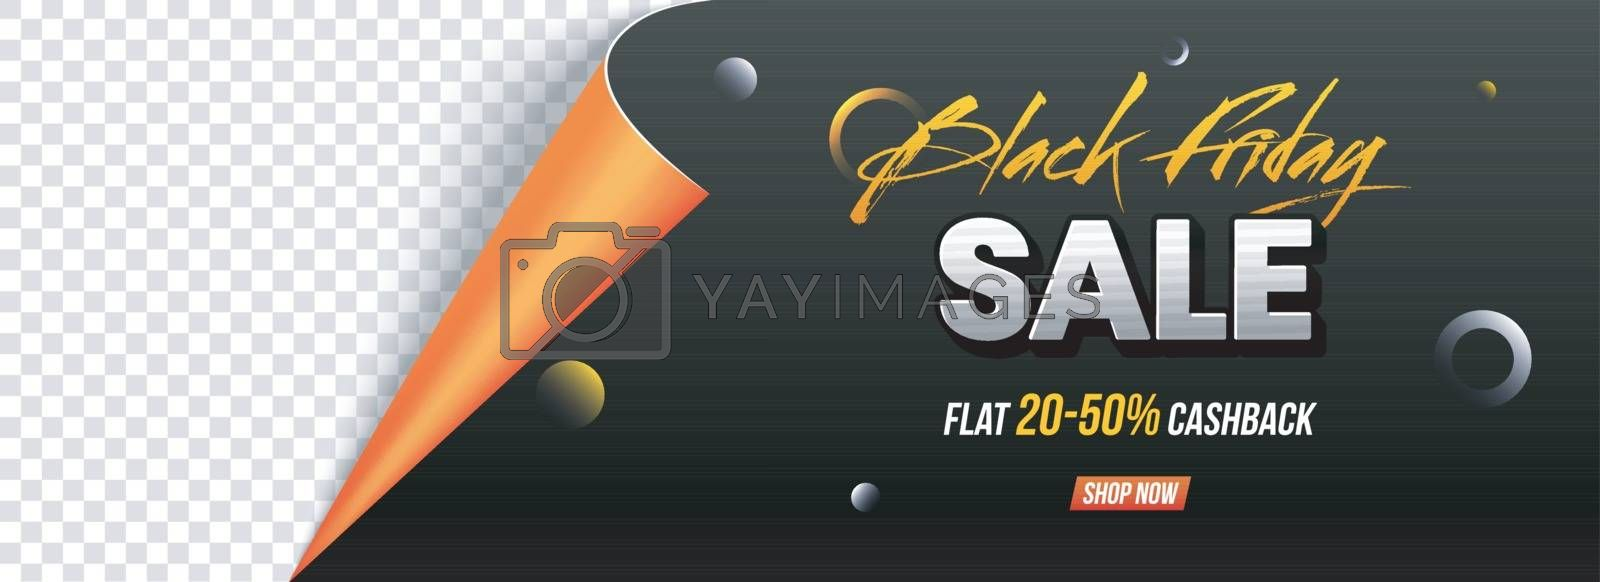 Curled paper style, Sale header or banner design with 20-50% Cashback on Black Friday sale with space for your product image.